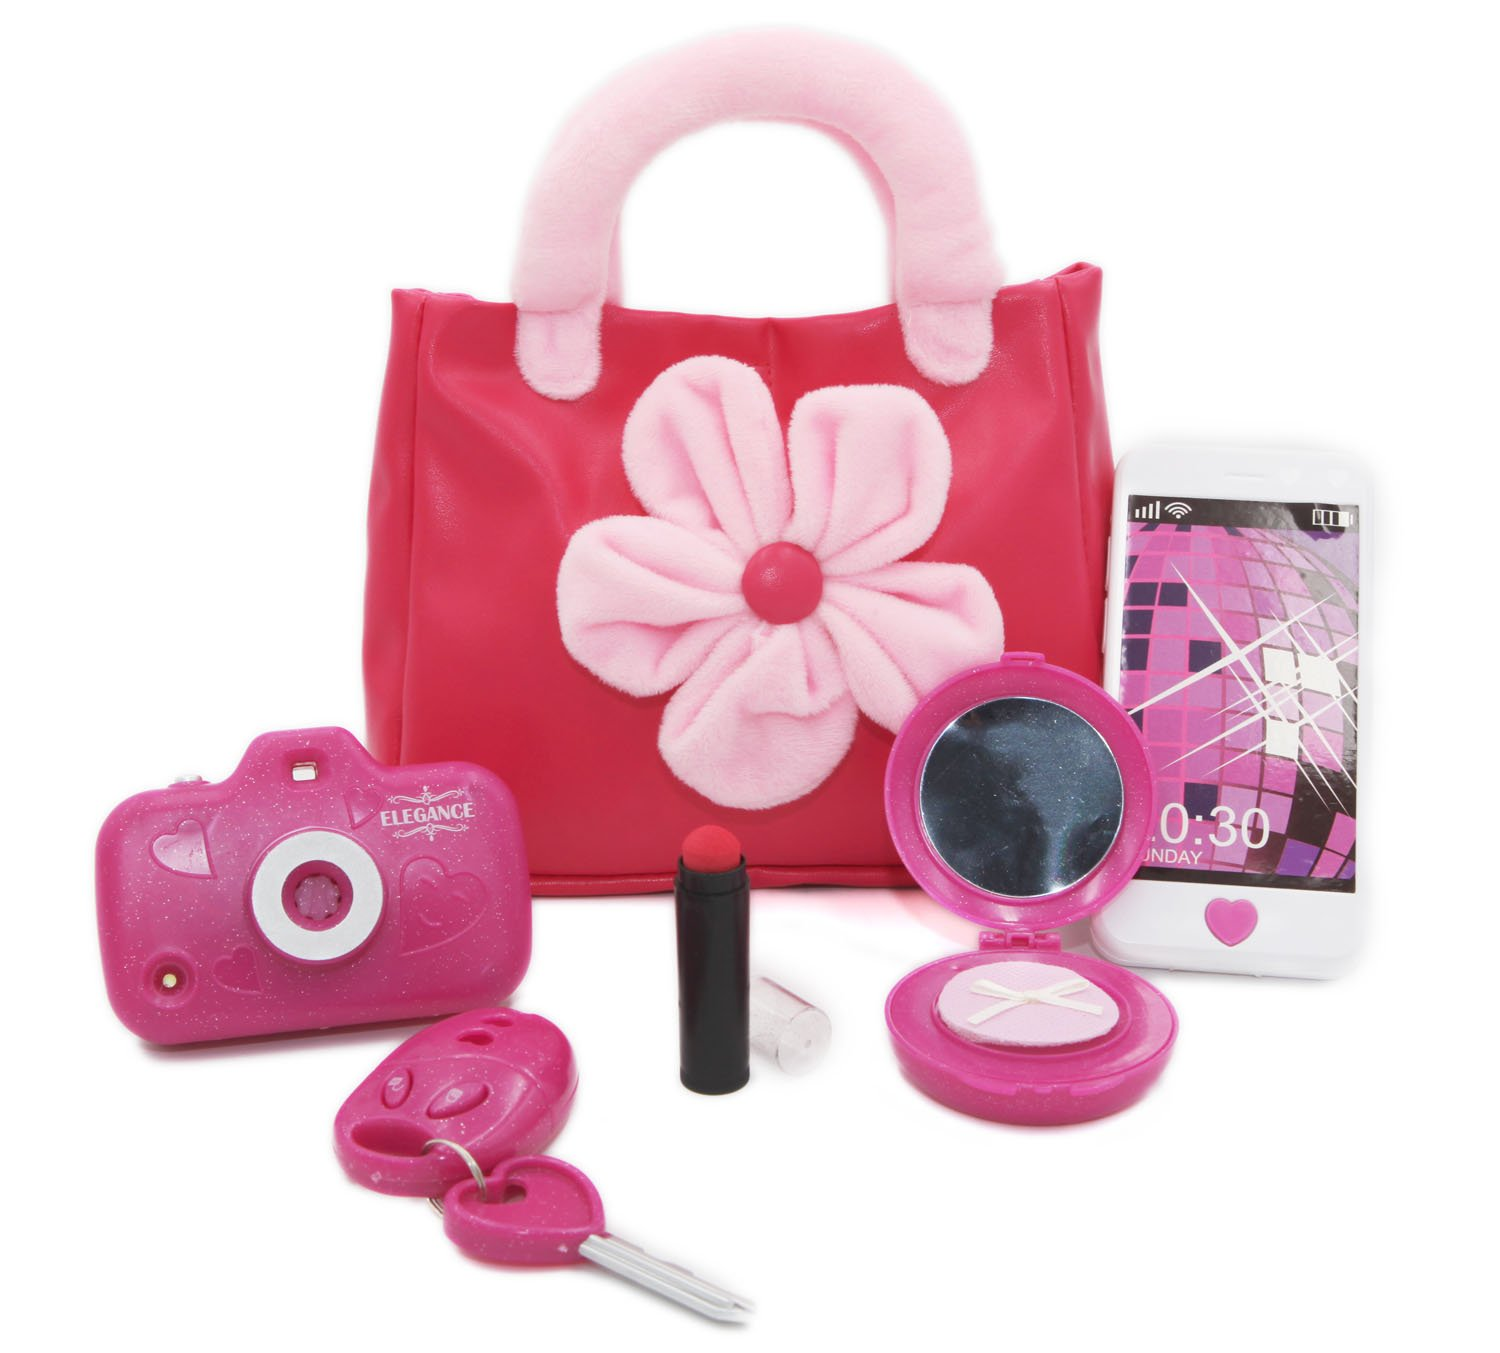 AI-DEE My First Purse - Pretend Play Kid Purse Sets 6 PCS Toys for Toddlers and Preschoolers Girls